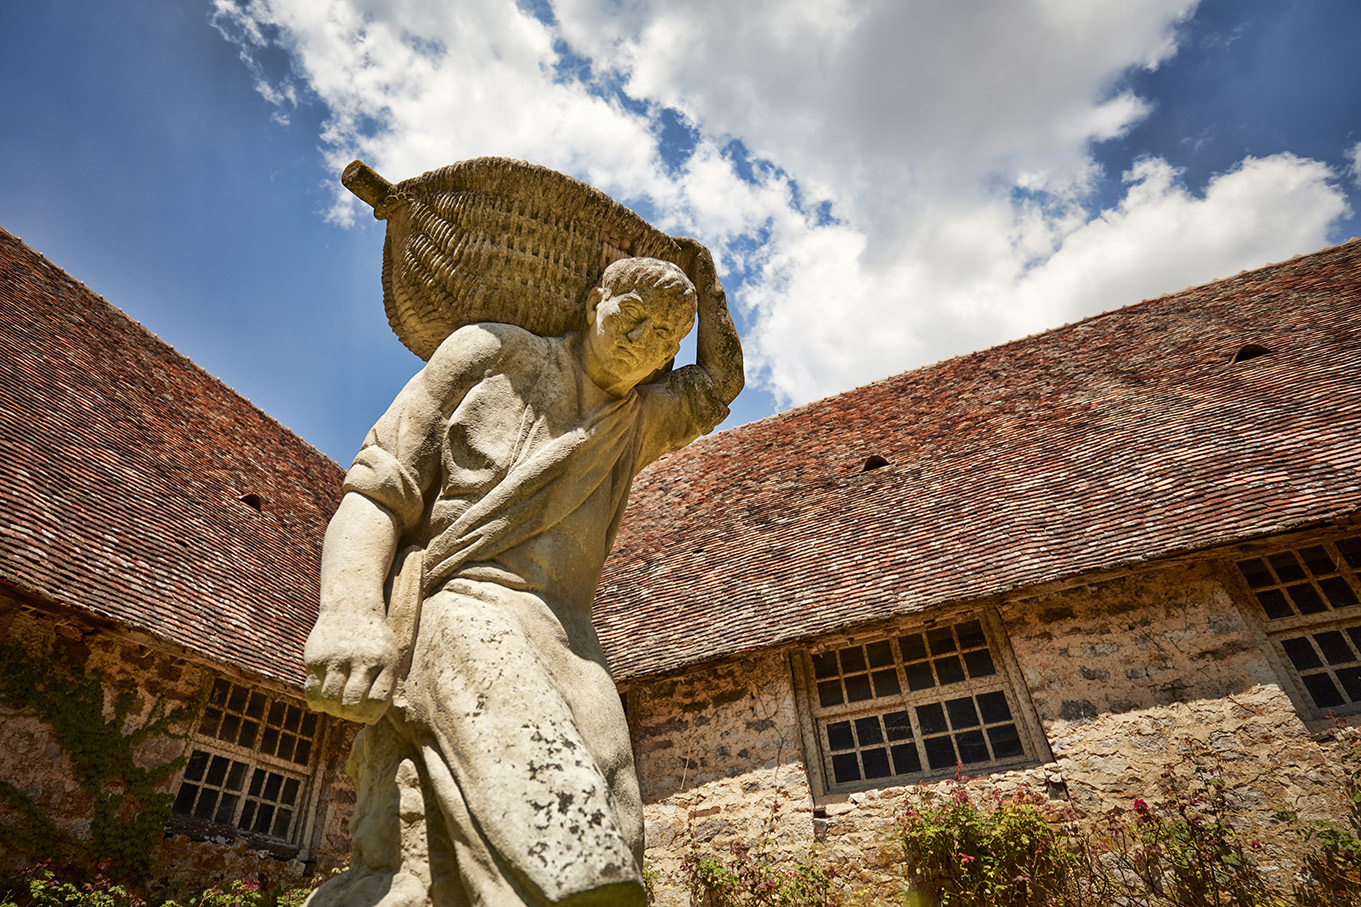 Le Porteur de Benaton (The Grape Basket Carrier) by Henri Bouchard (1875-1960), in the small courtyard.© Serge Chapuis